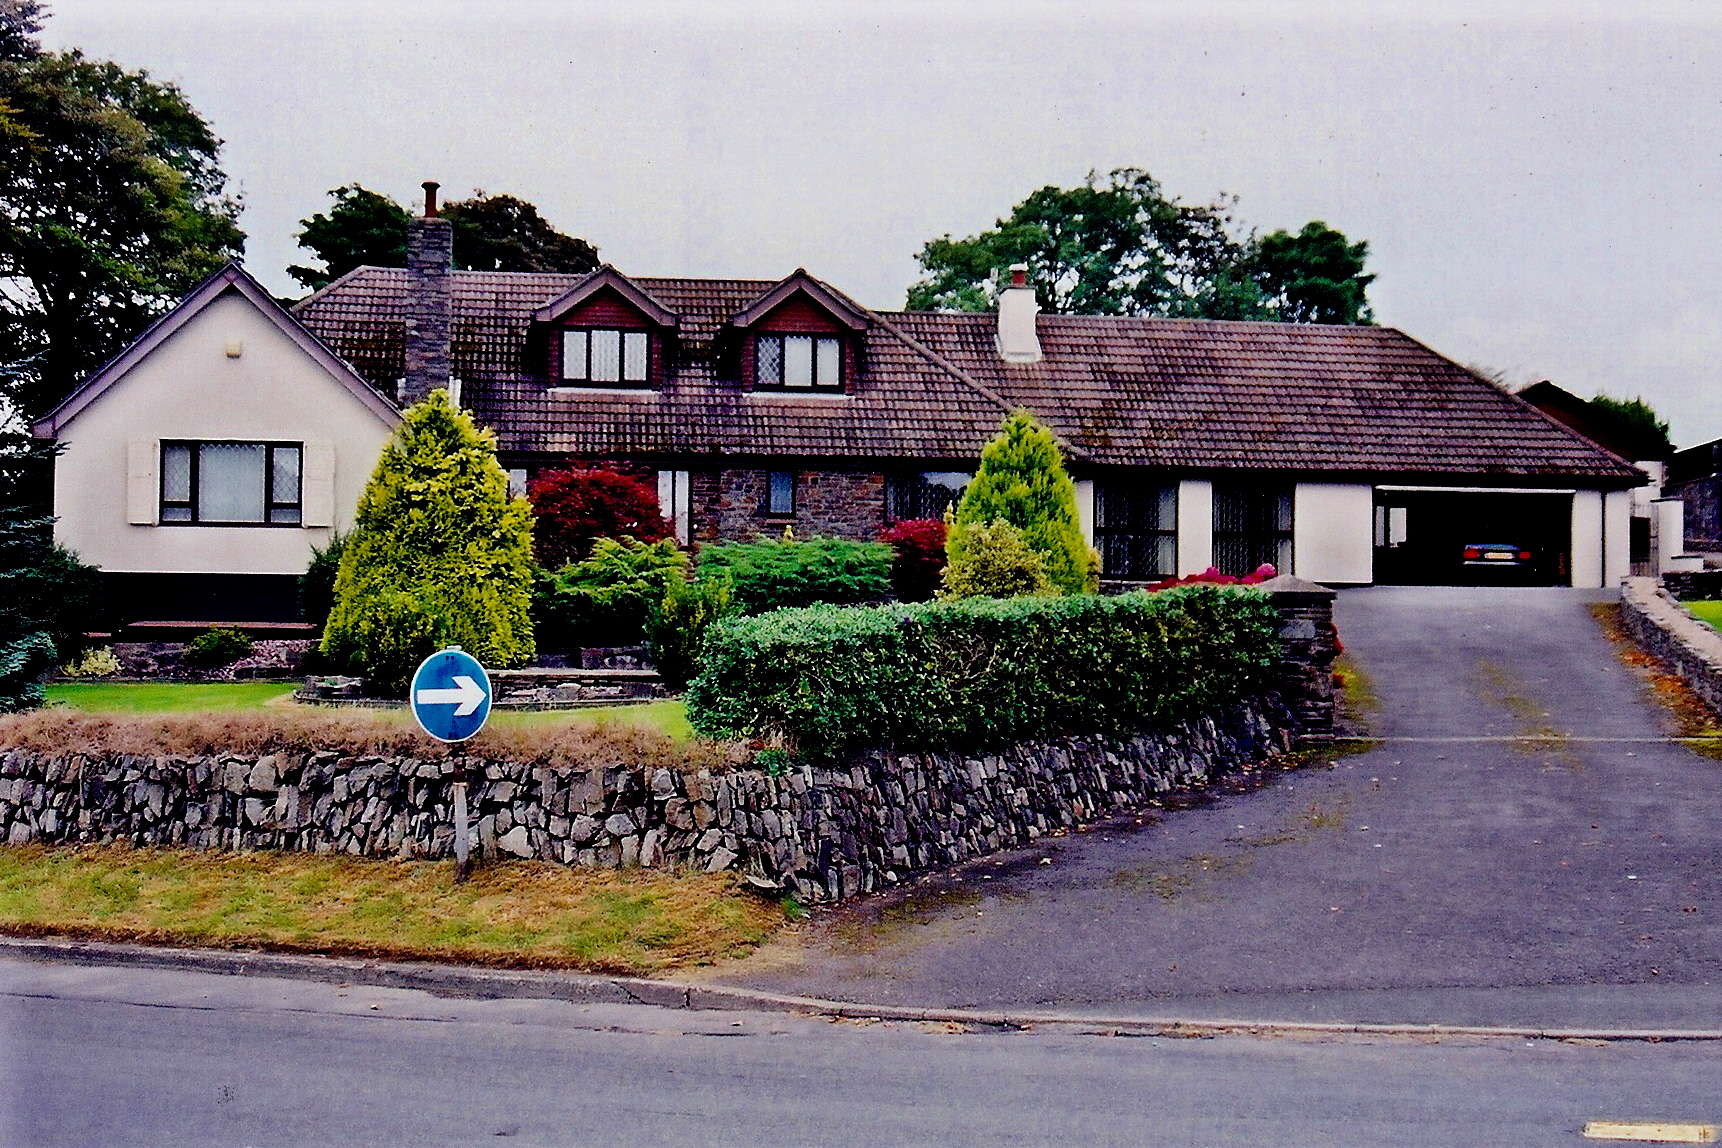 File onchan church road large modern home geograph for Big modern houses uk